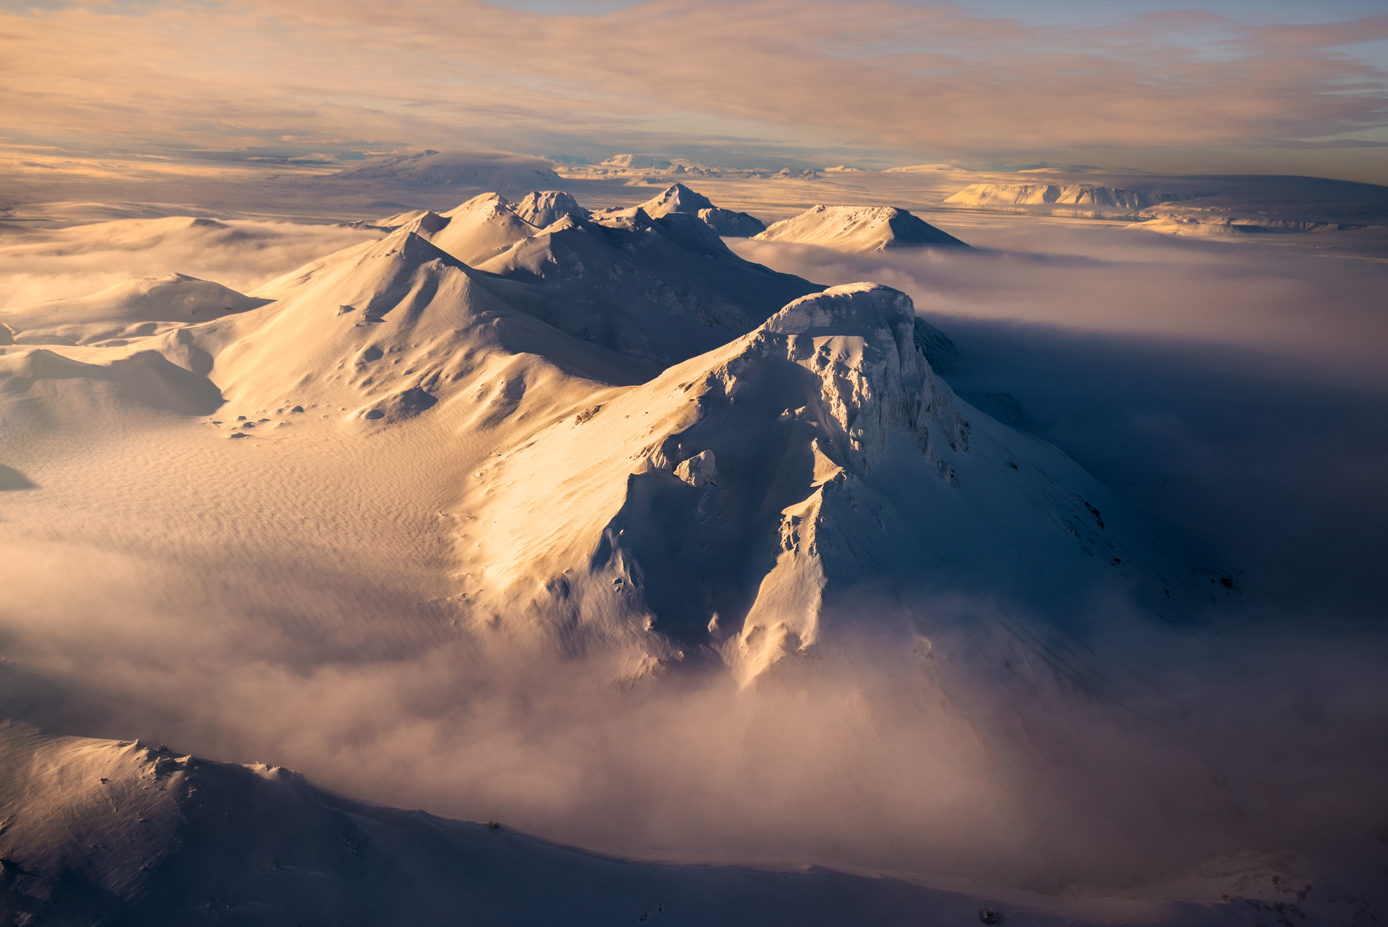 Snow capped mountains of Iceland